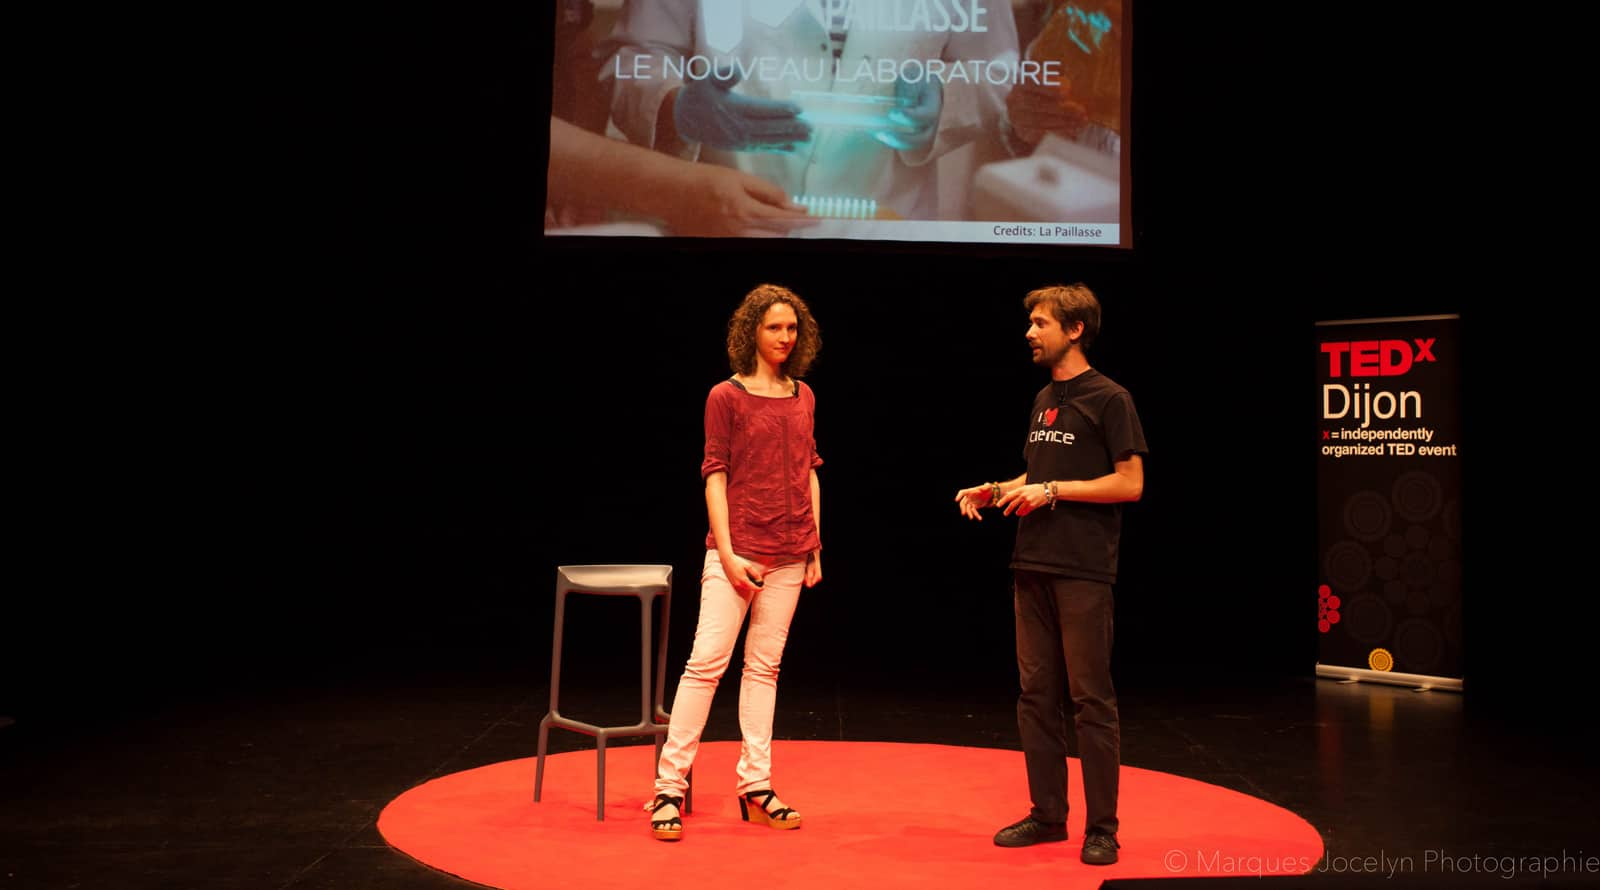 TEDx Dijon 2014 - Photo : Jocelyn Marques